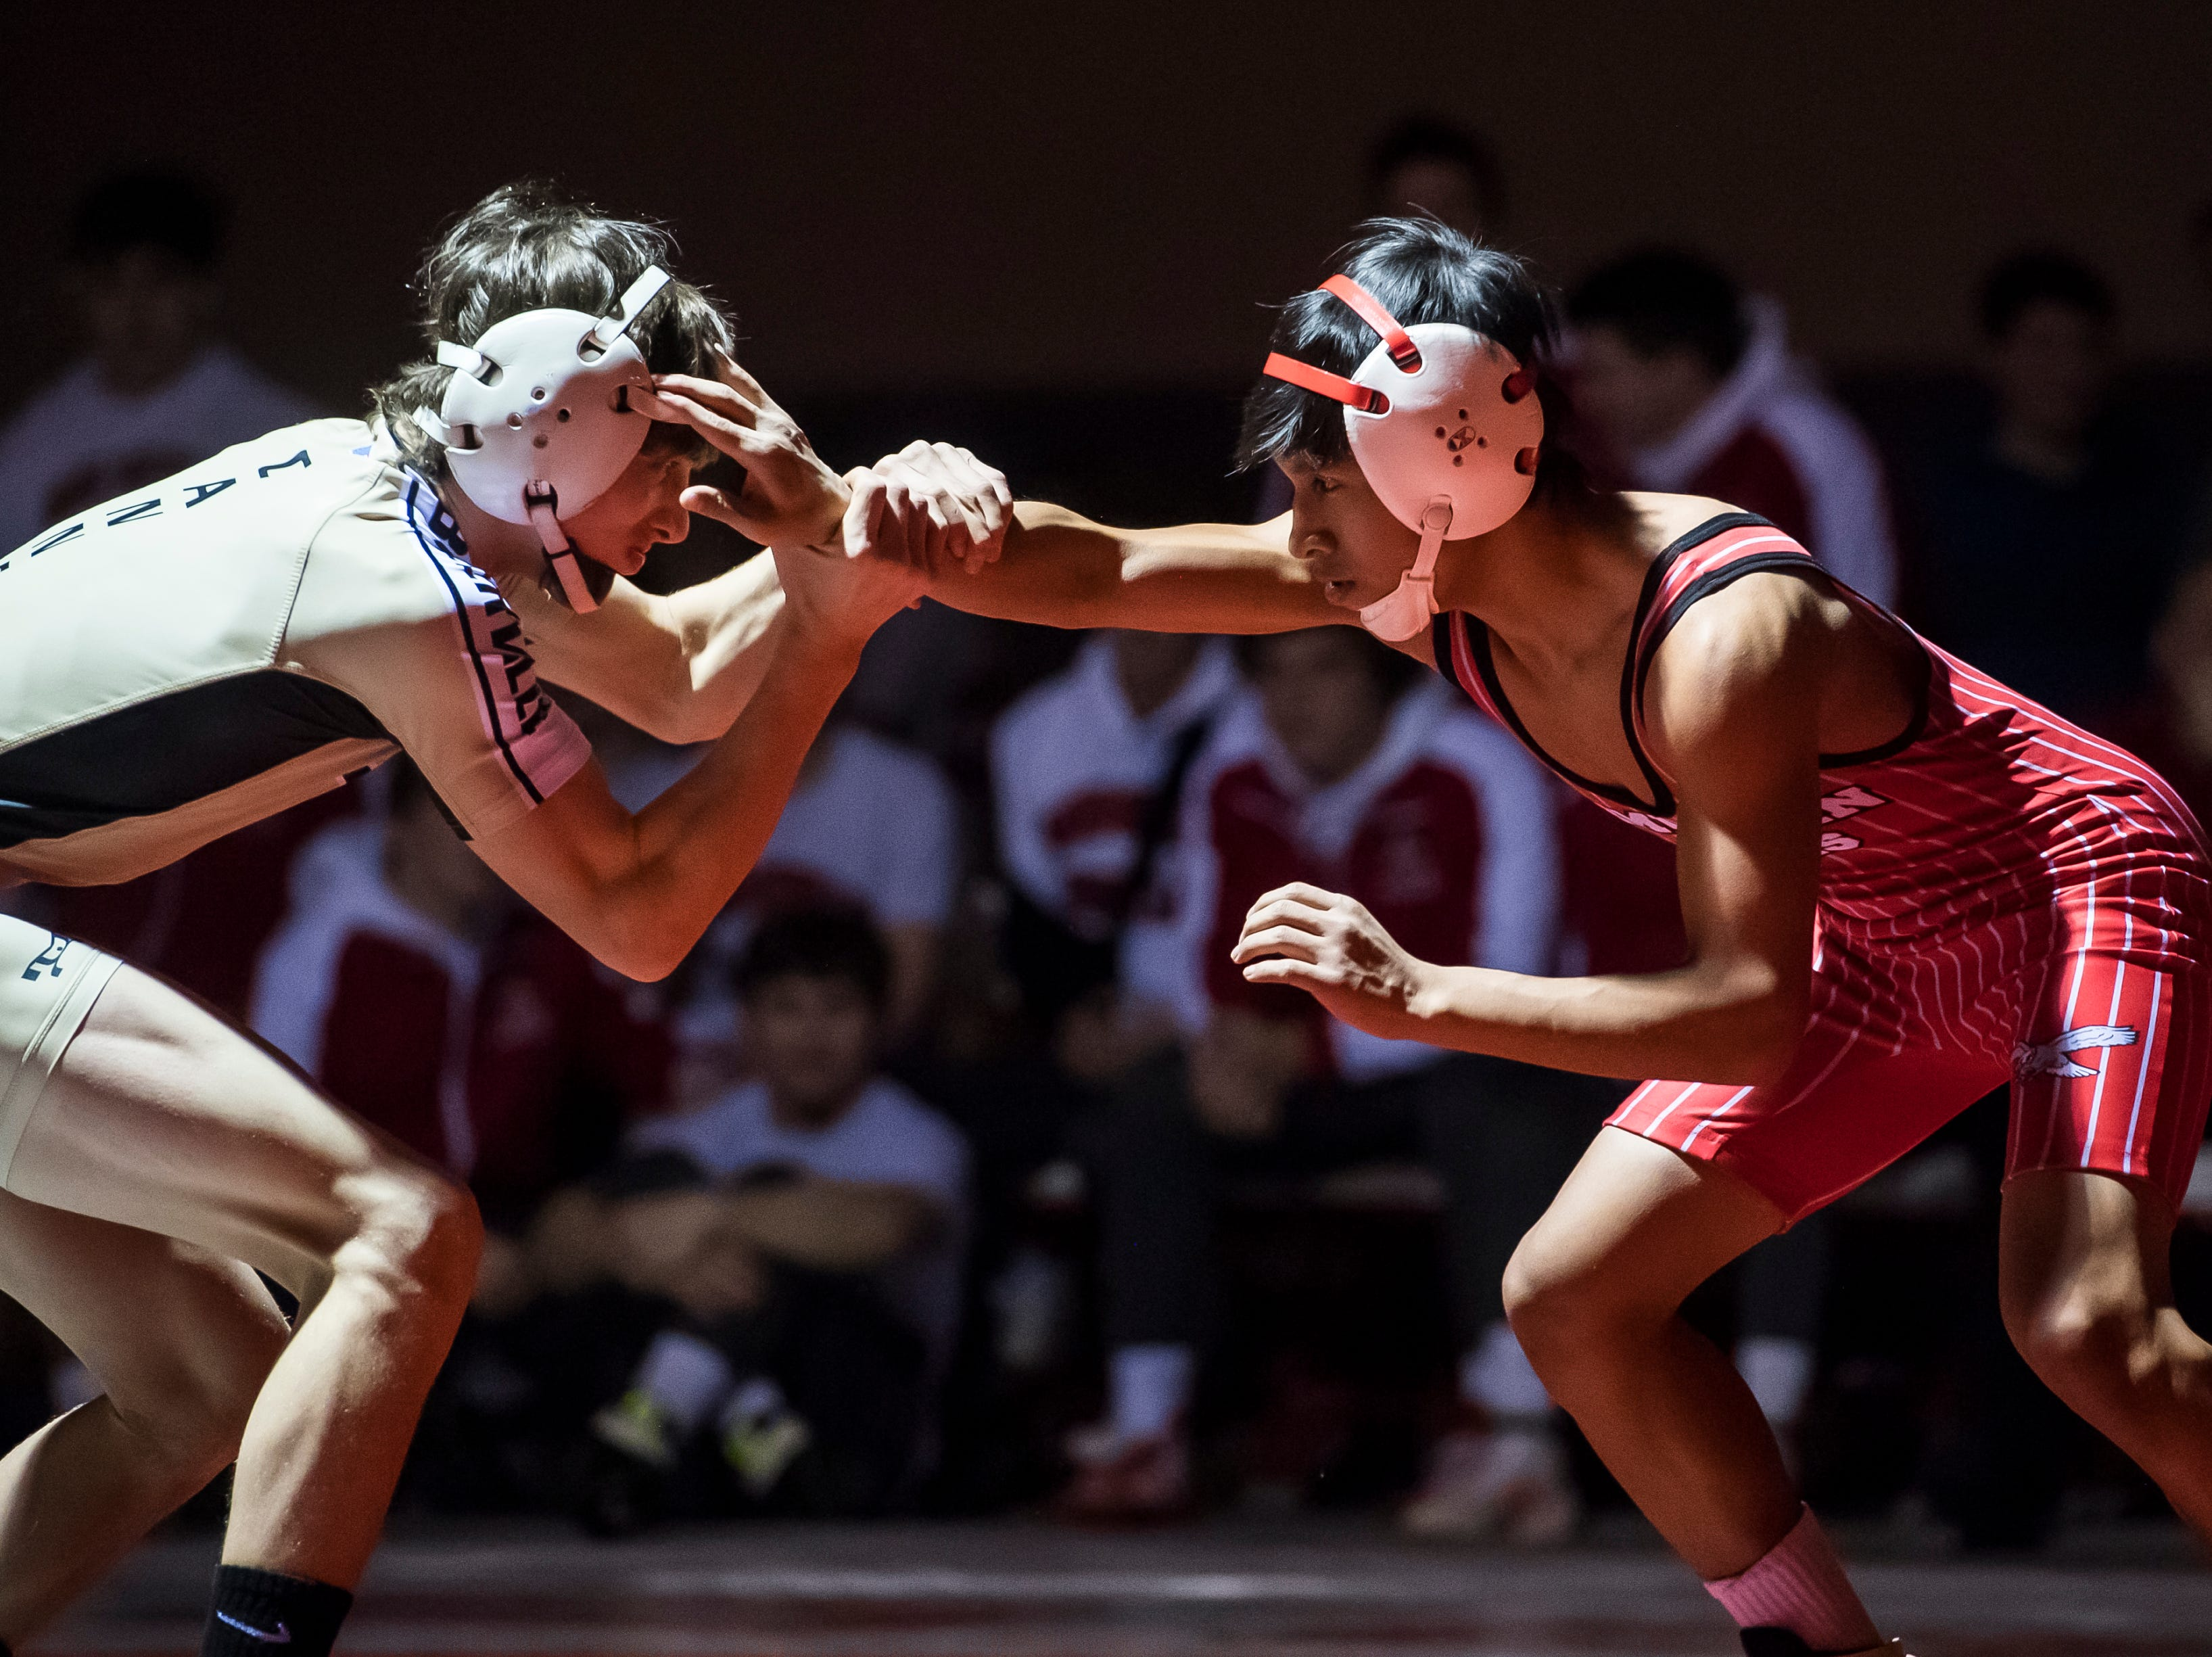 Bermudian Springs' Coby Johnston, right, wrestles Biglerville's Levi Haines in the 106-pound bout at Bermudian Springs High School on December 13, 2018. The Eagles won 51-27. Haines won by fall but the Eagles won the duel 51-27.